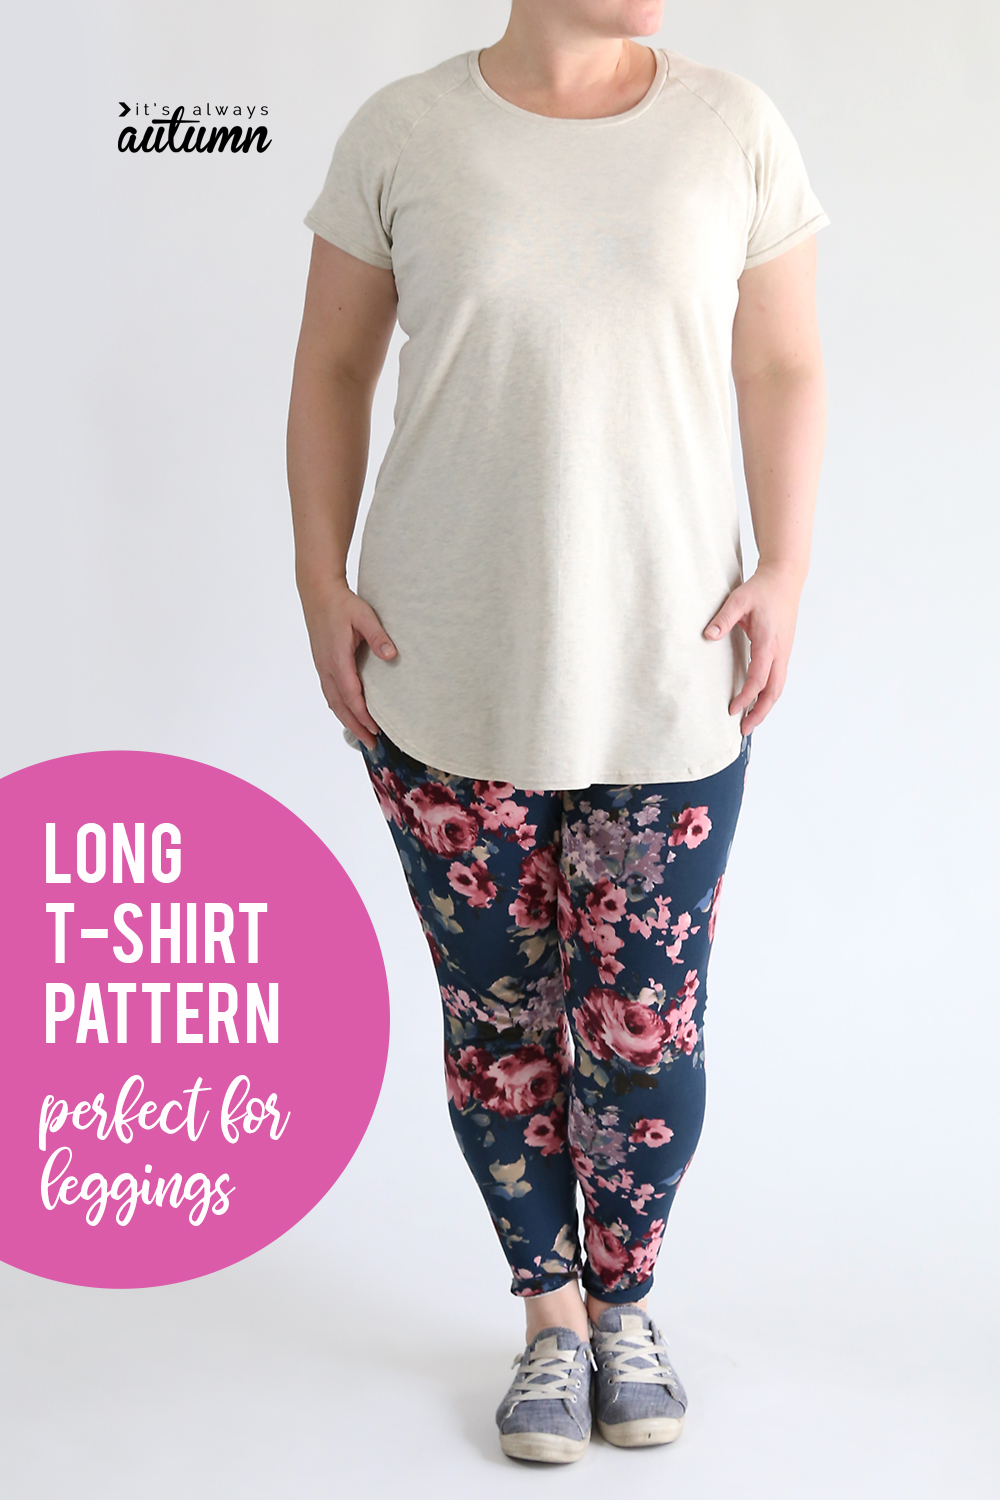 Tunic length long t-shirt sewing pattern perfect for wearing with leggings!